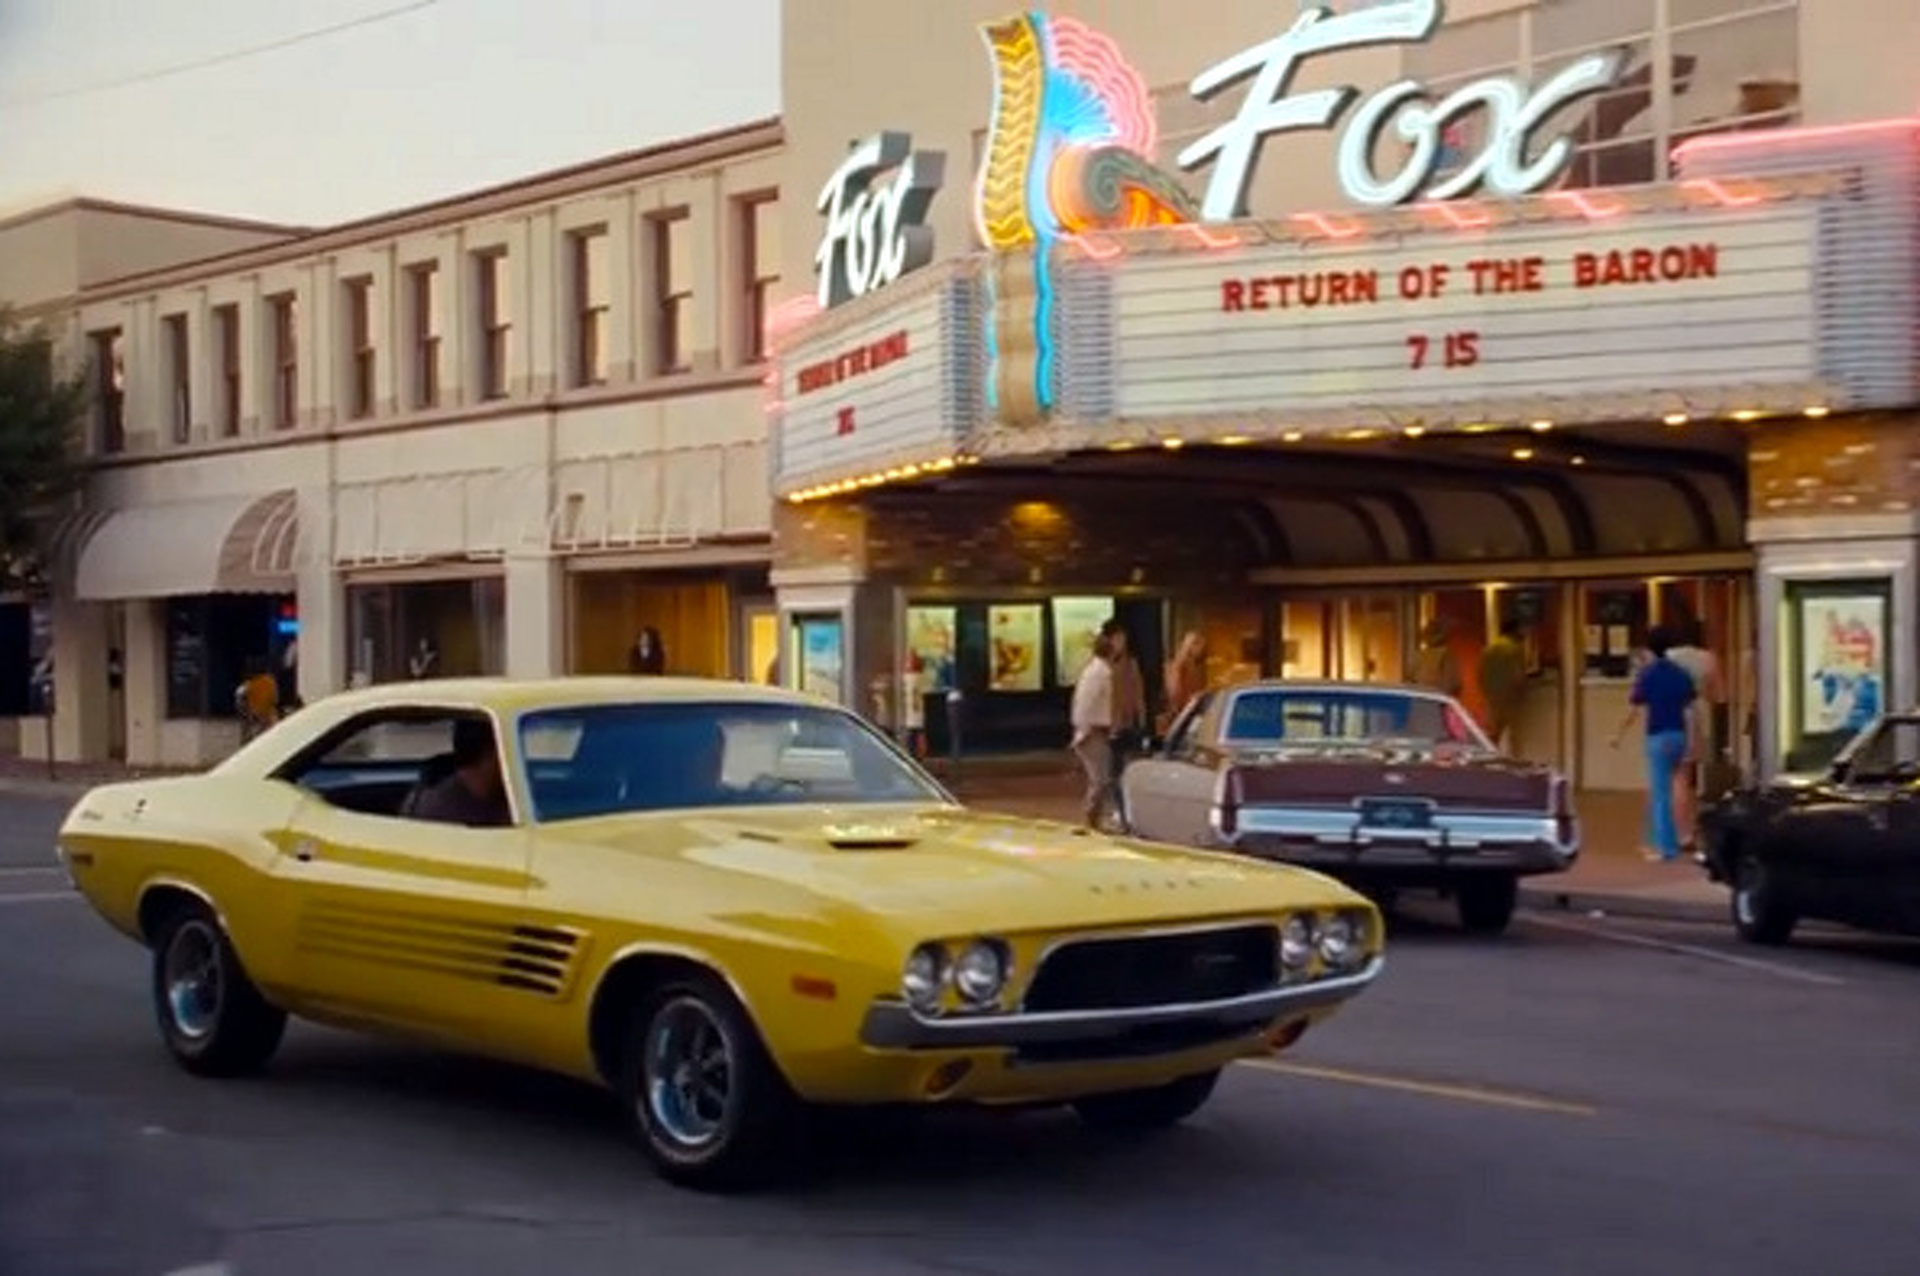 SRT Ad Strikes At Soul of Car Culture [video]